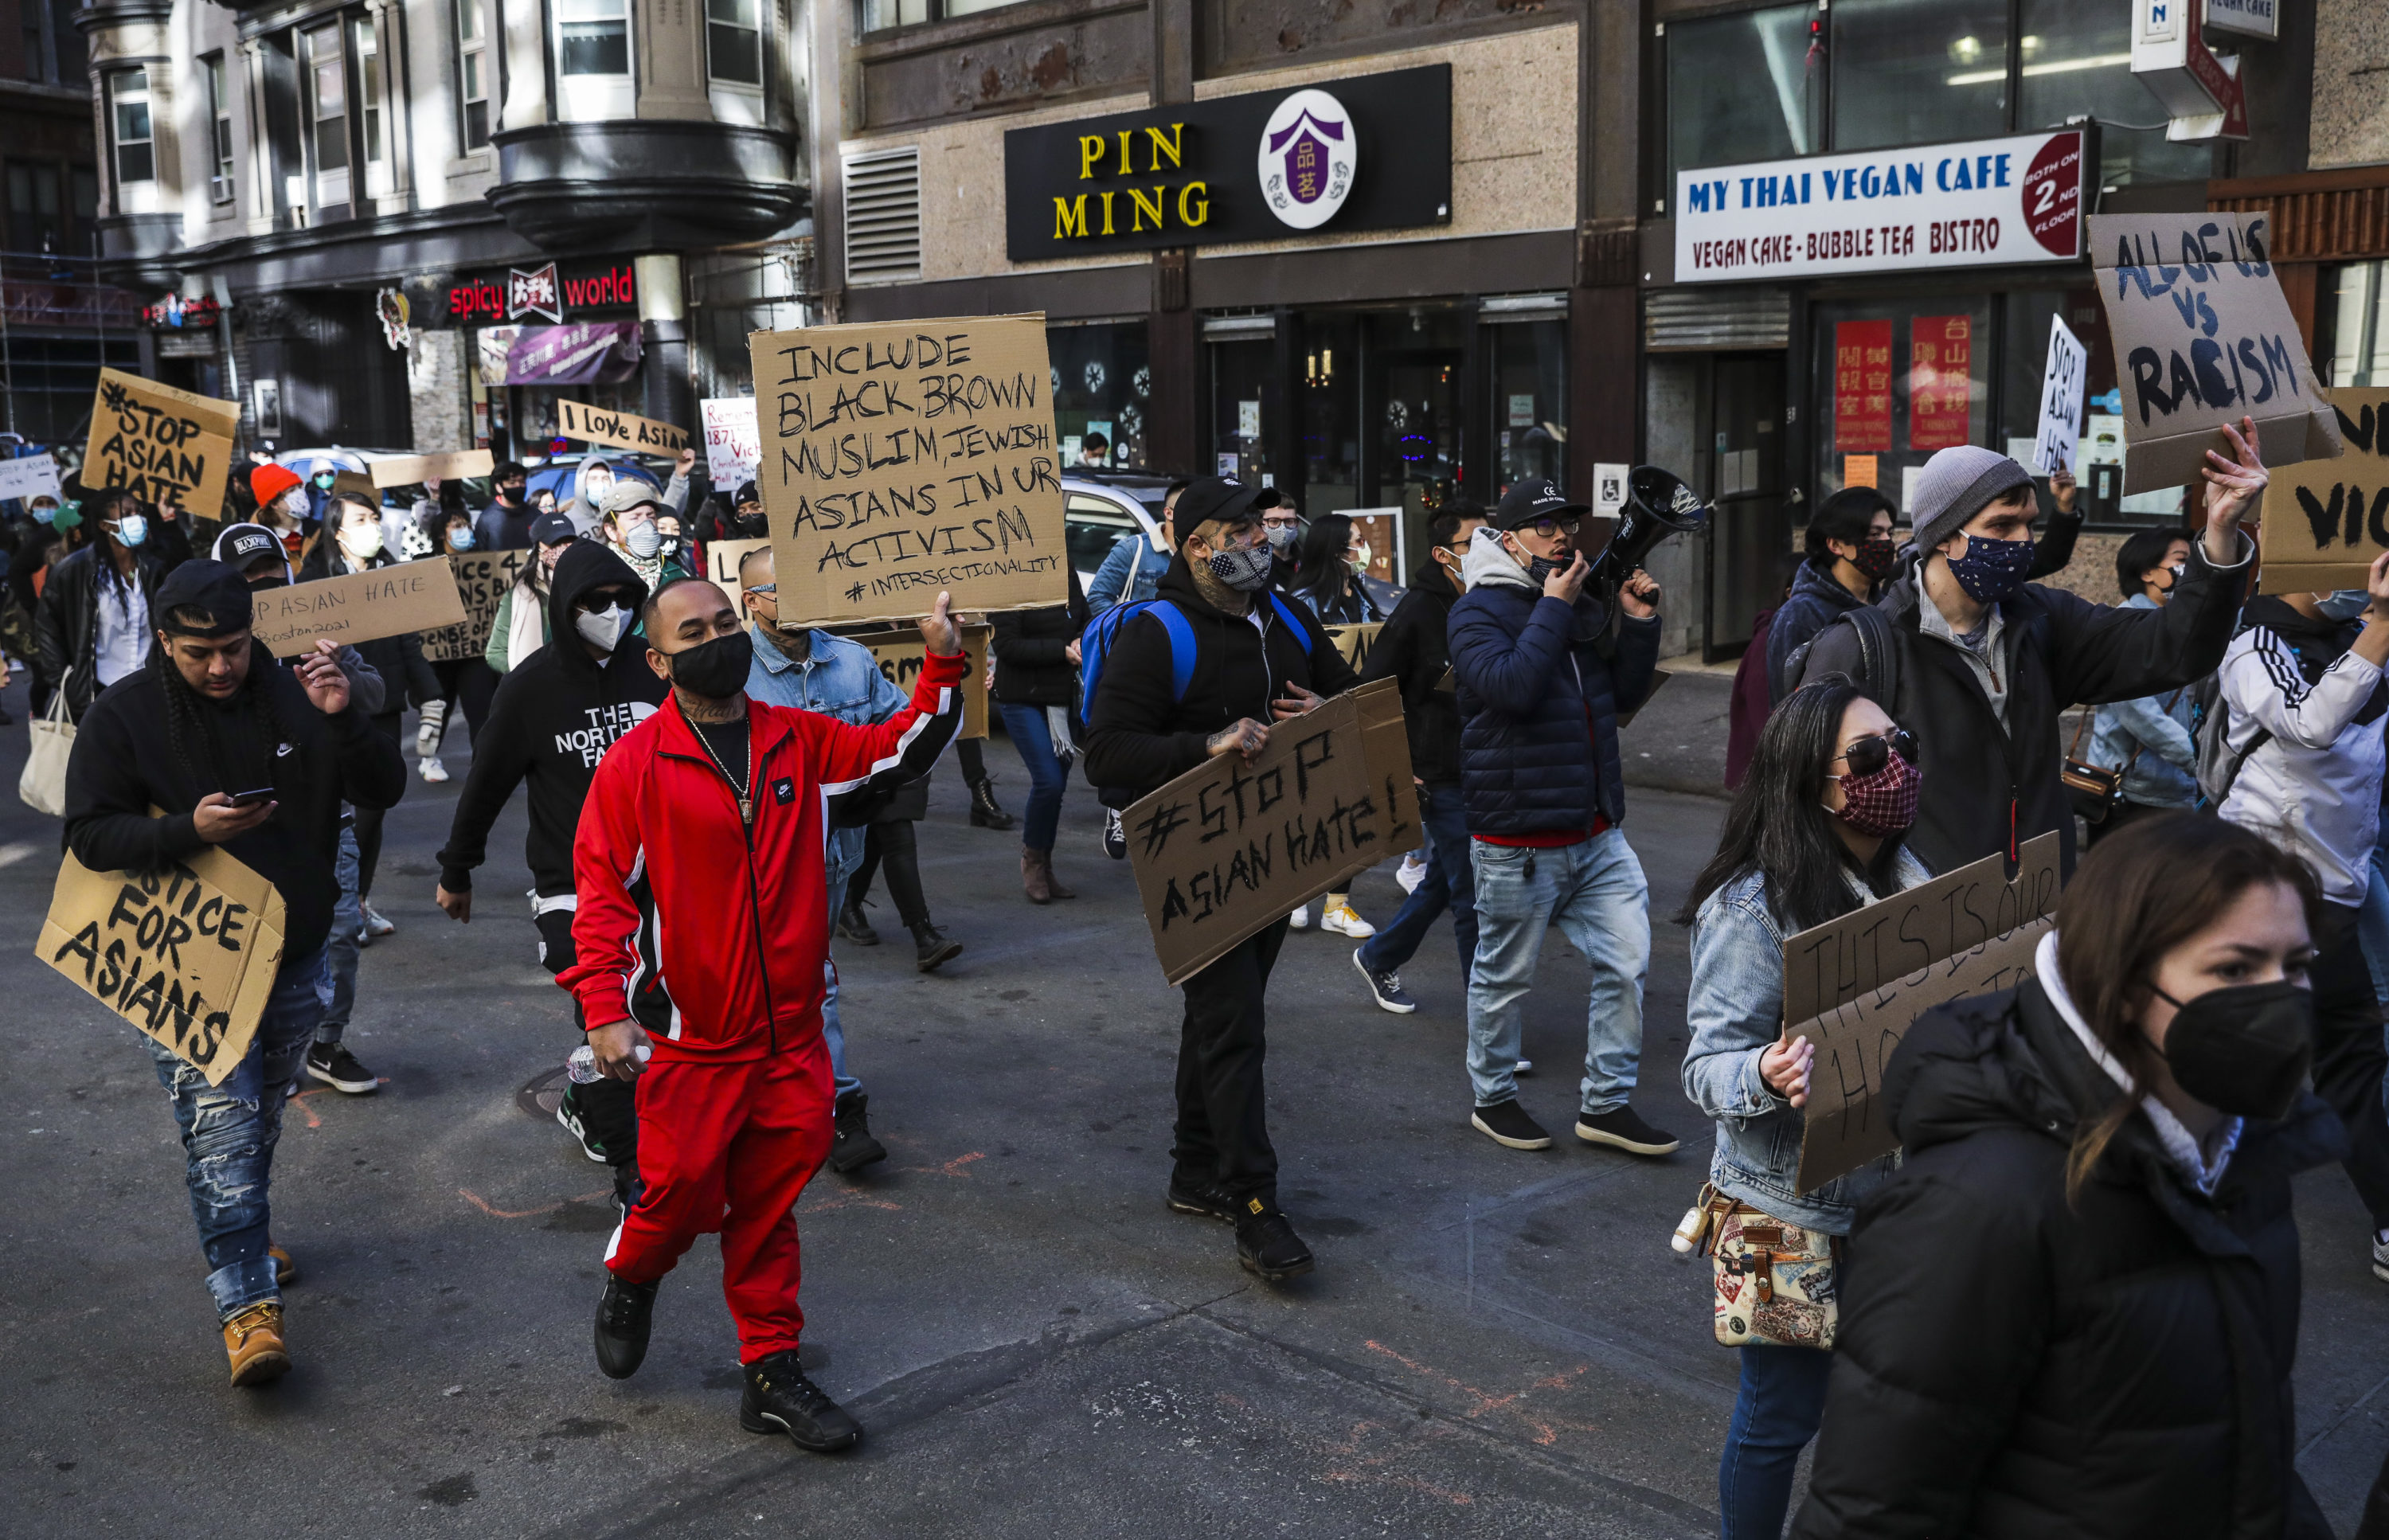 """Hundreds marched through Chinatown en route to the State House during a """"Stop Asian Hate"""" rally in Boston on March 13. (Erin Clark/The Boston Globe via Getty Images)"""